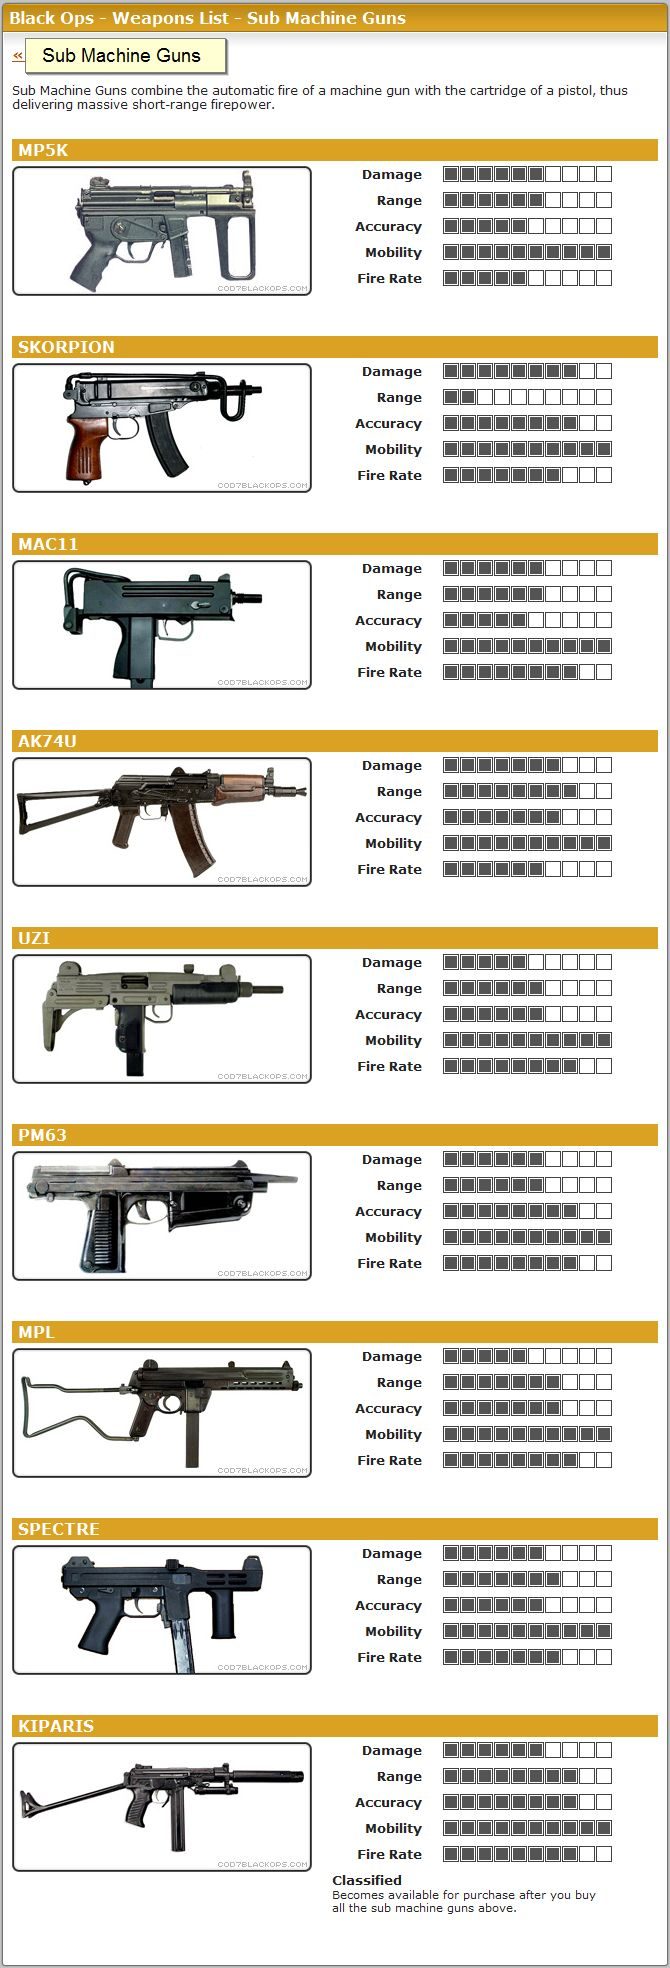 https://www.gamerevolution.com/guides/58009-call-of-duty-black-ops-2-light-machine-guns-guide